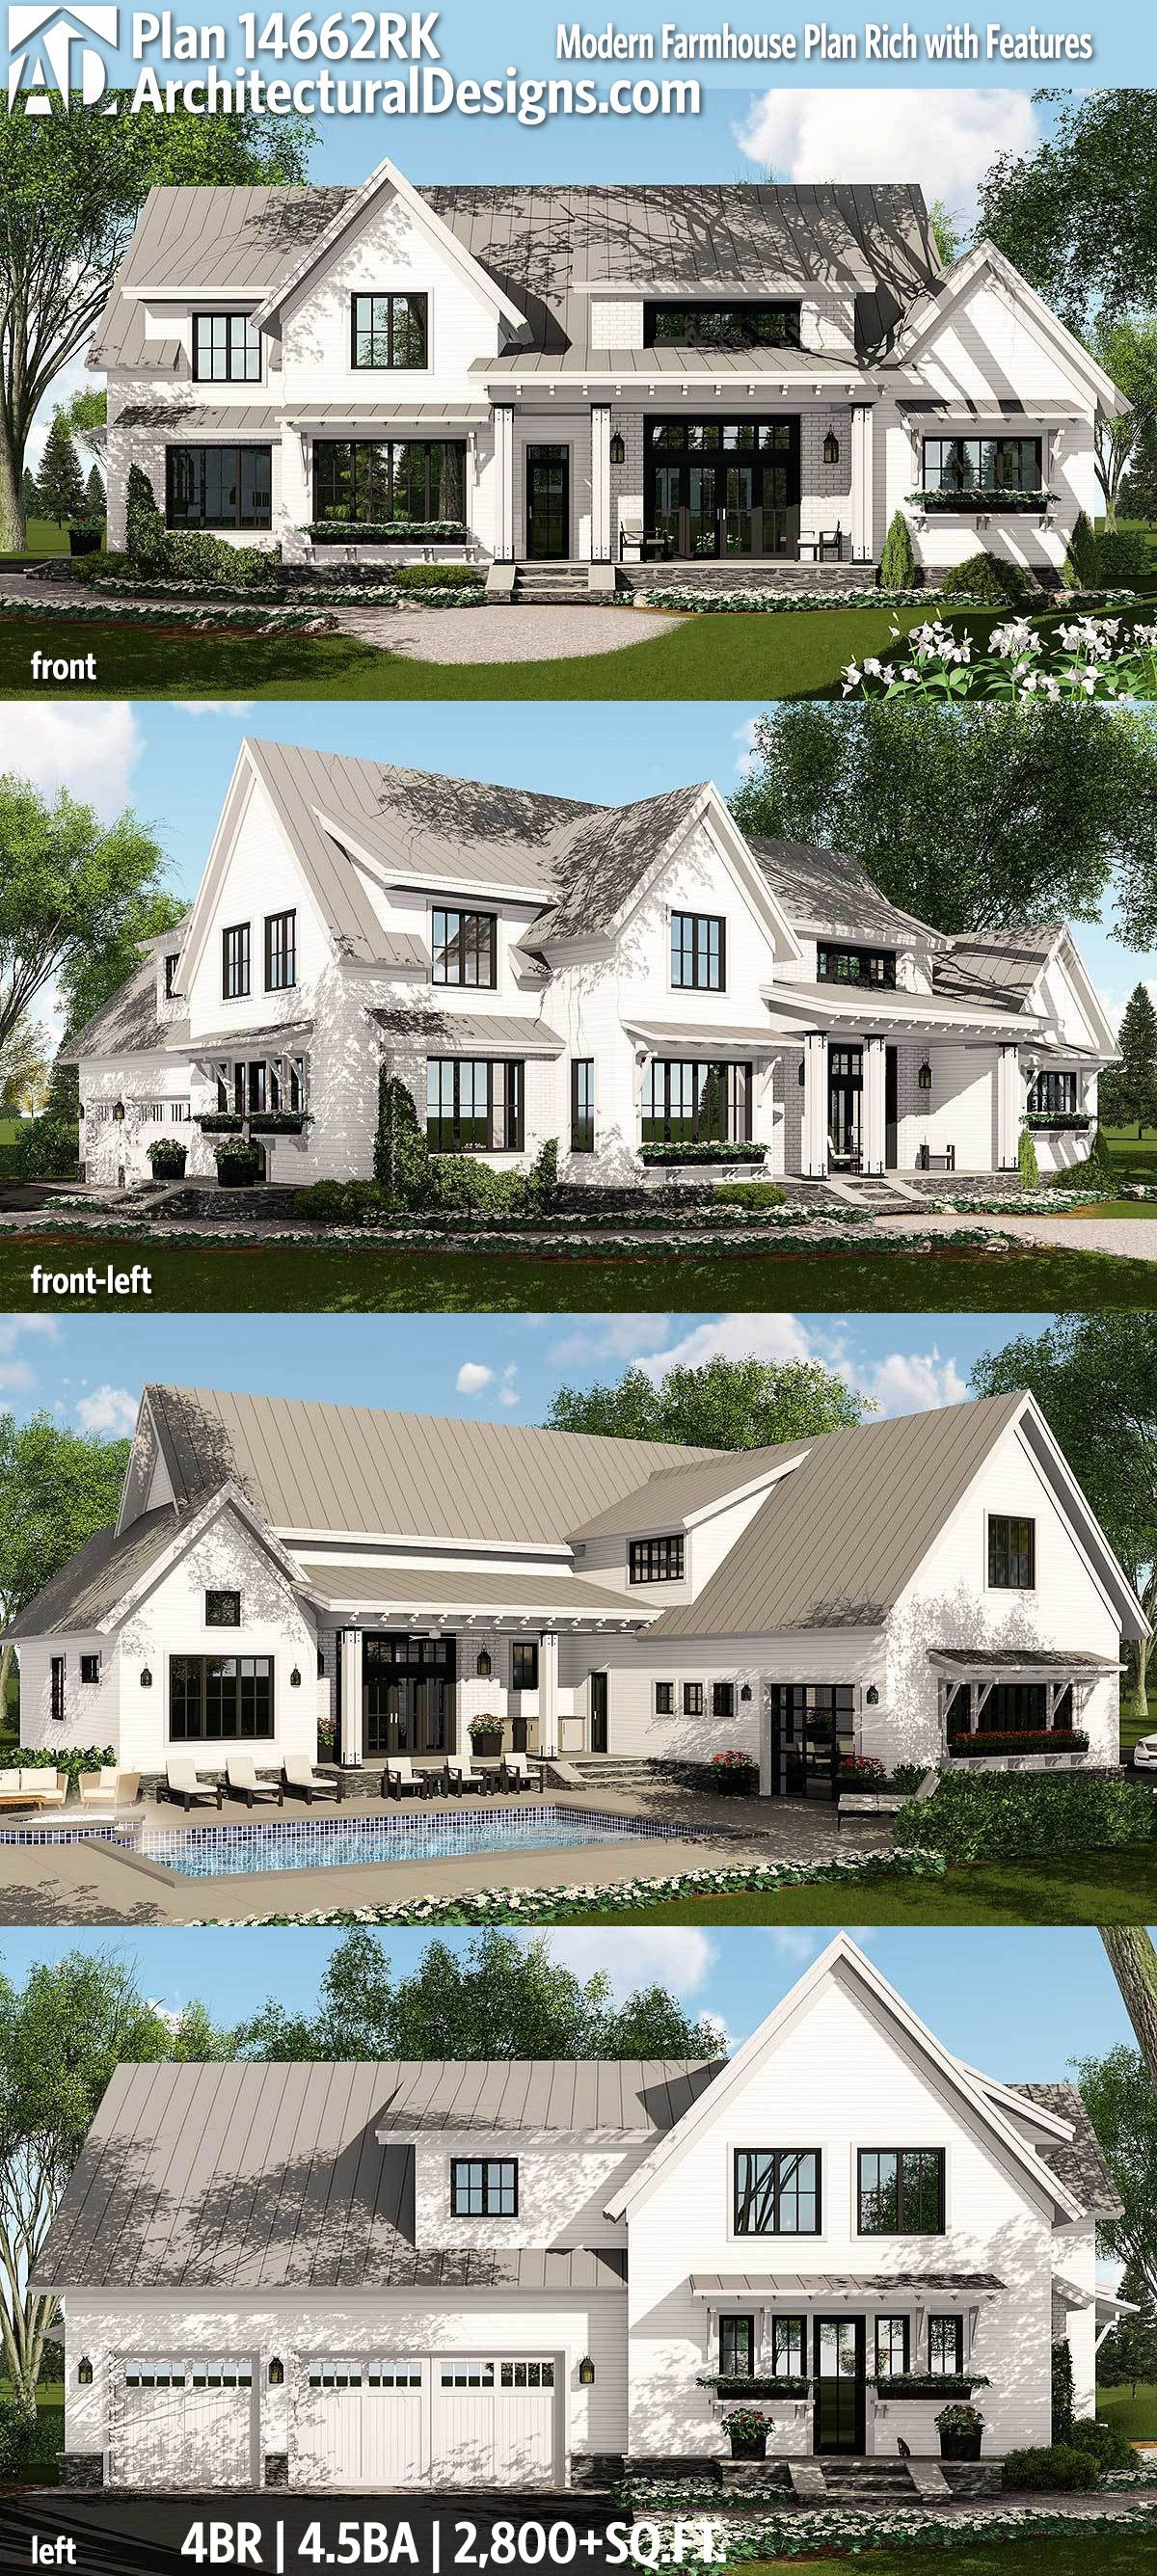 Architectural Designs Modern Farmhouse Plan 14662RK gives you 4 beds, 4.5 baths and over 2,800 sq. ft. of heated living space. Ready when you are. Where do YOU want to build? #14662RK #adhouseplans #architecturaldesigns #houseplan #architecture #newhome #newconstruction #newhouse #homedesign #dreamhome #dreamhouse #homeplan #architecture #architect #housegoals #Modernfarmhouse #Farmhousestyle #farmhouse